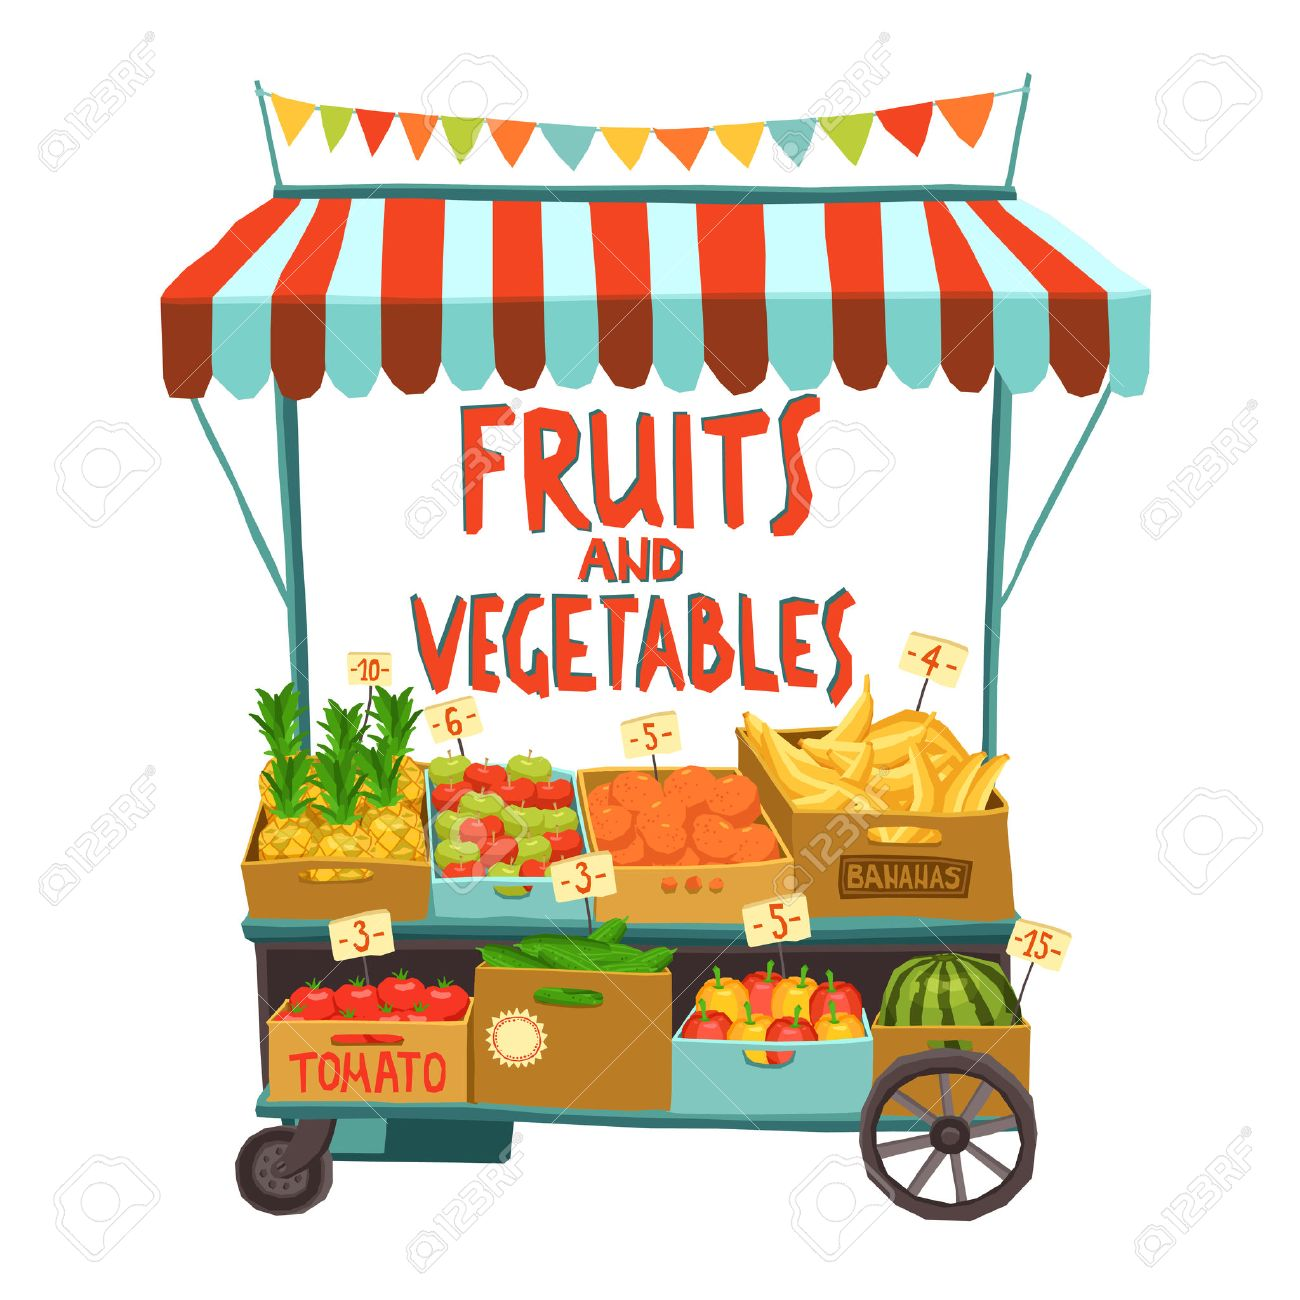 Street sale cart with fruits and vegetables cartoon vector illustration - 45163932